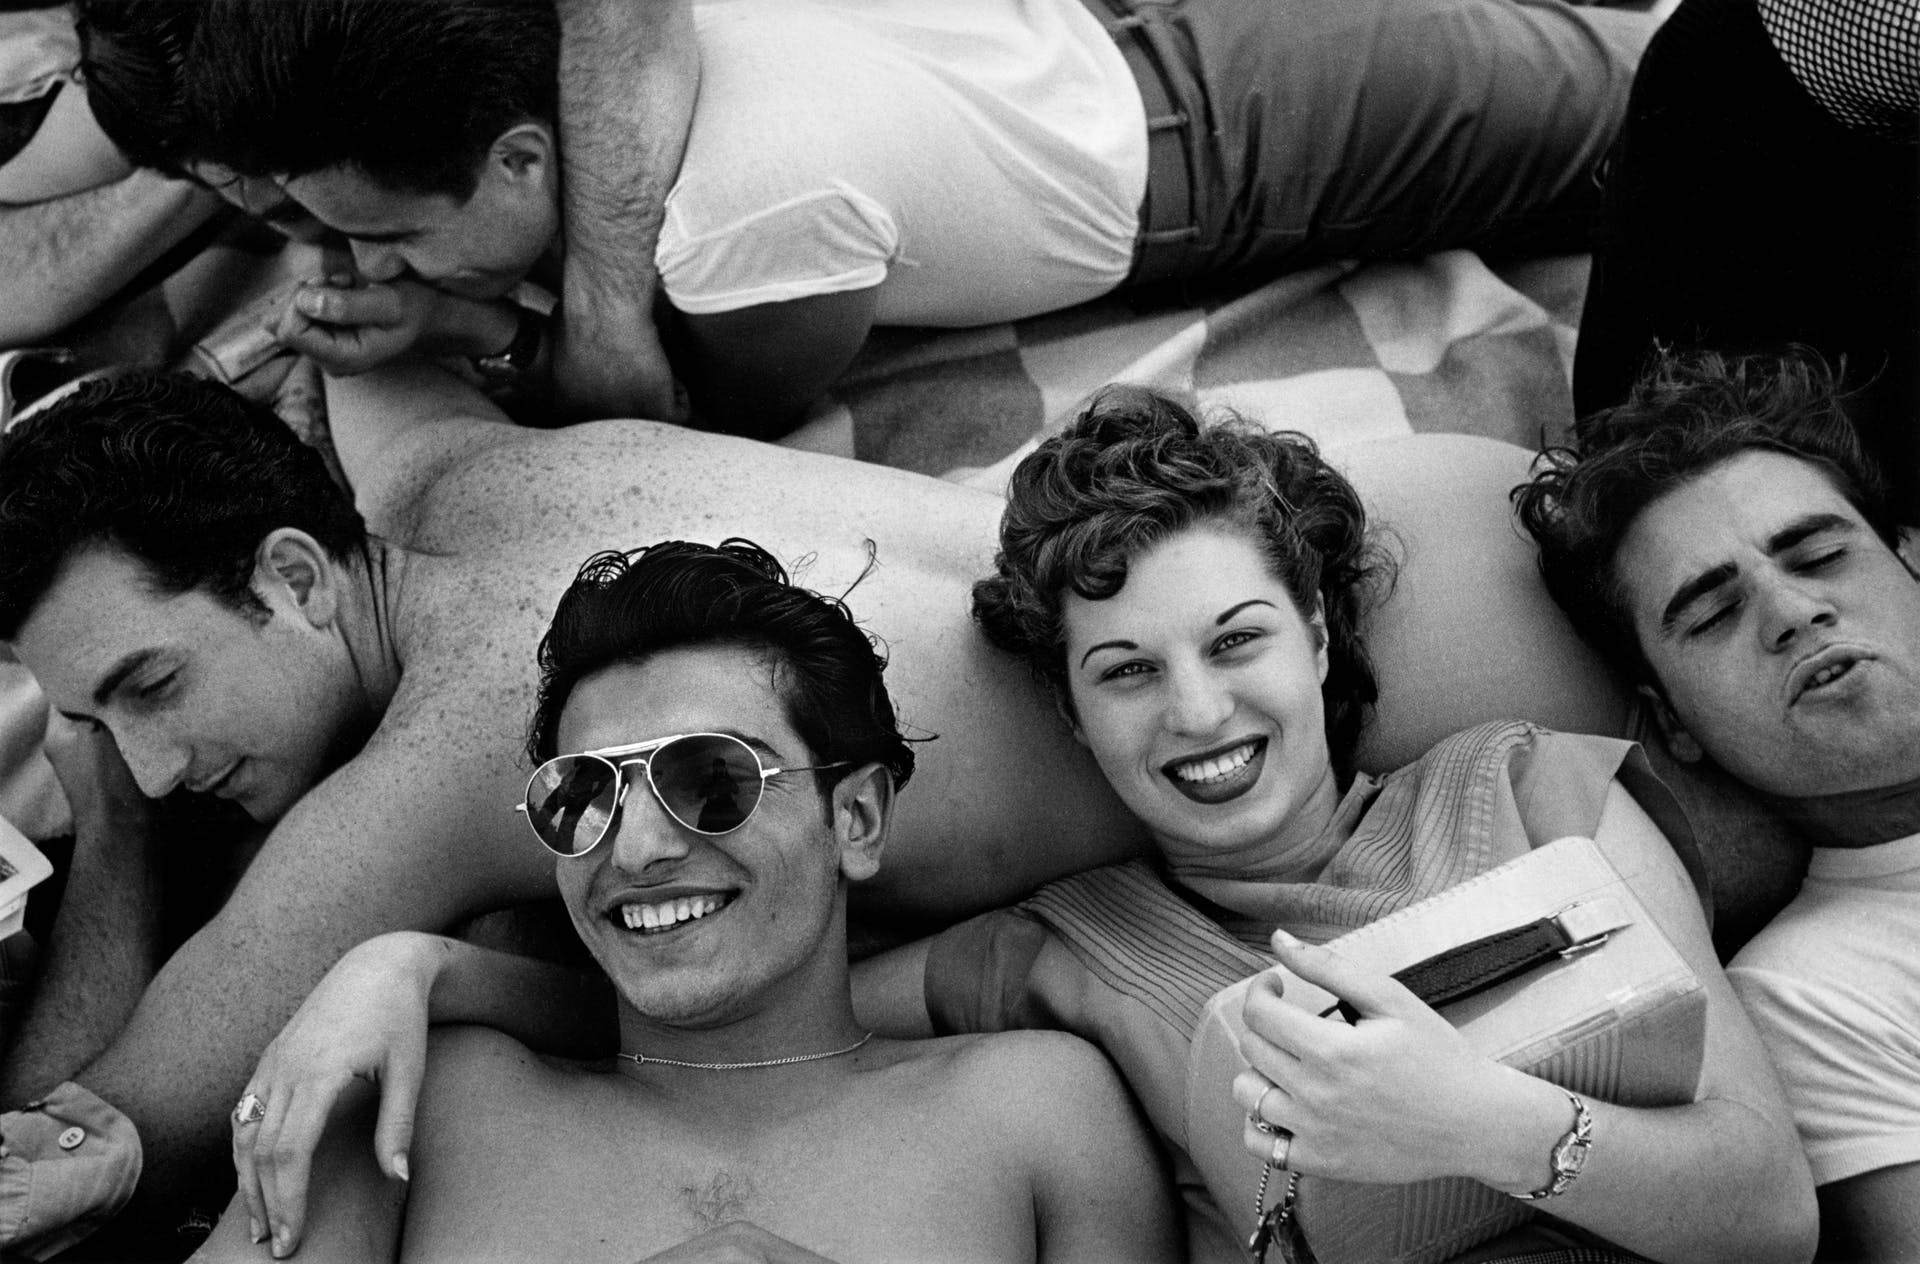 Last Stop Coney Island: The Life and Photography of Harold Feinstein